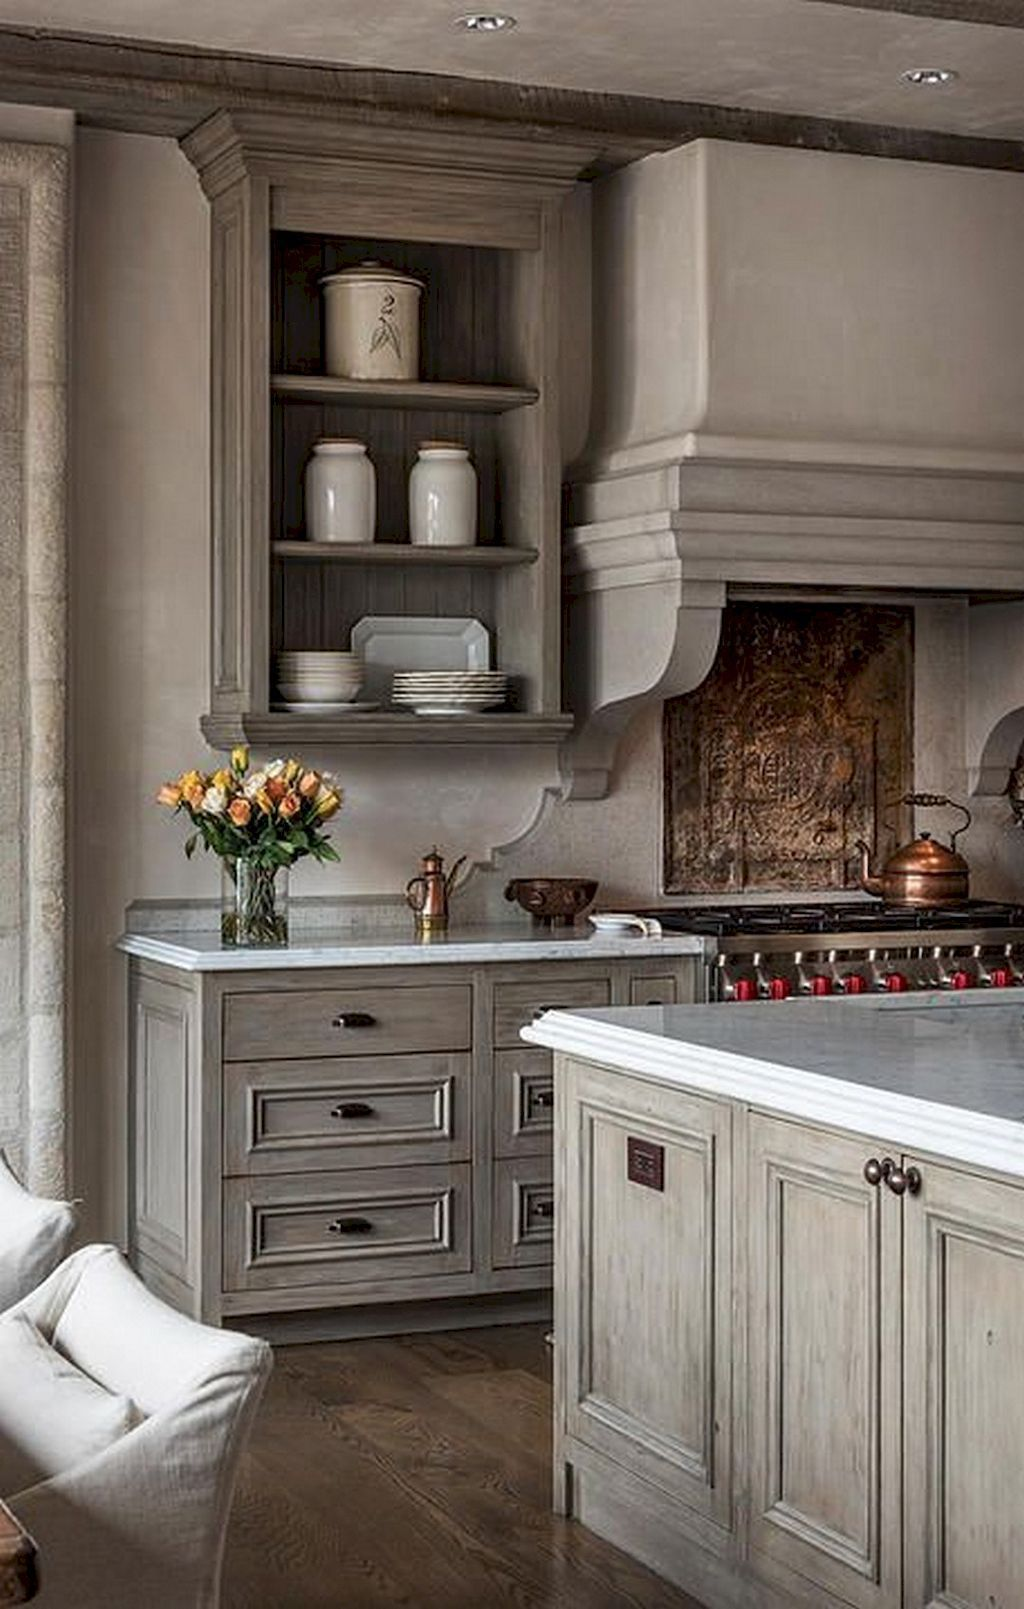 French country kitchen design u decor ideas